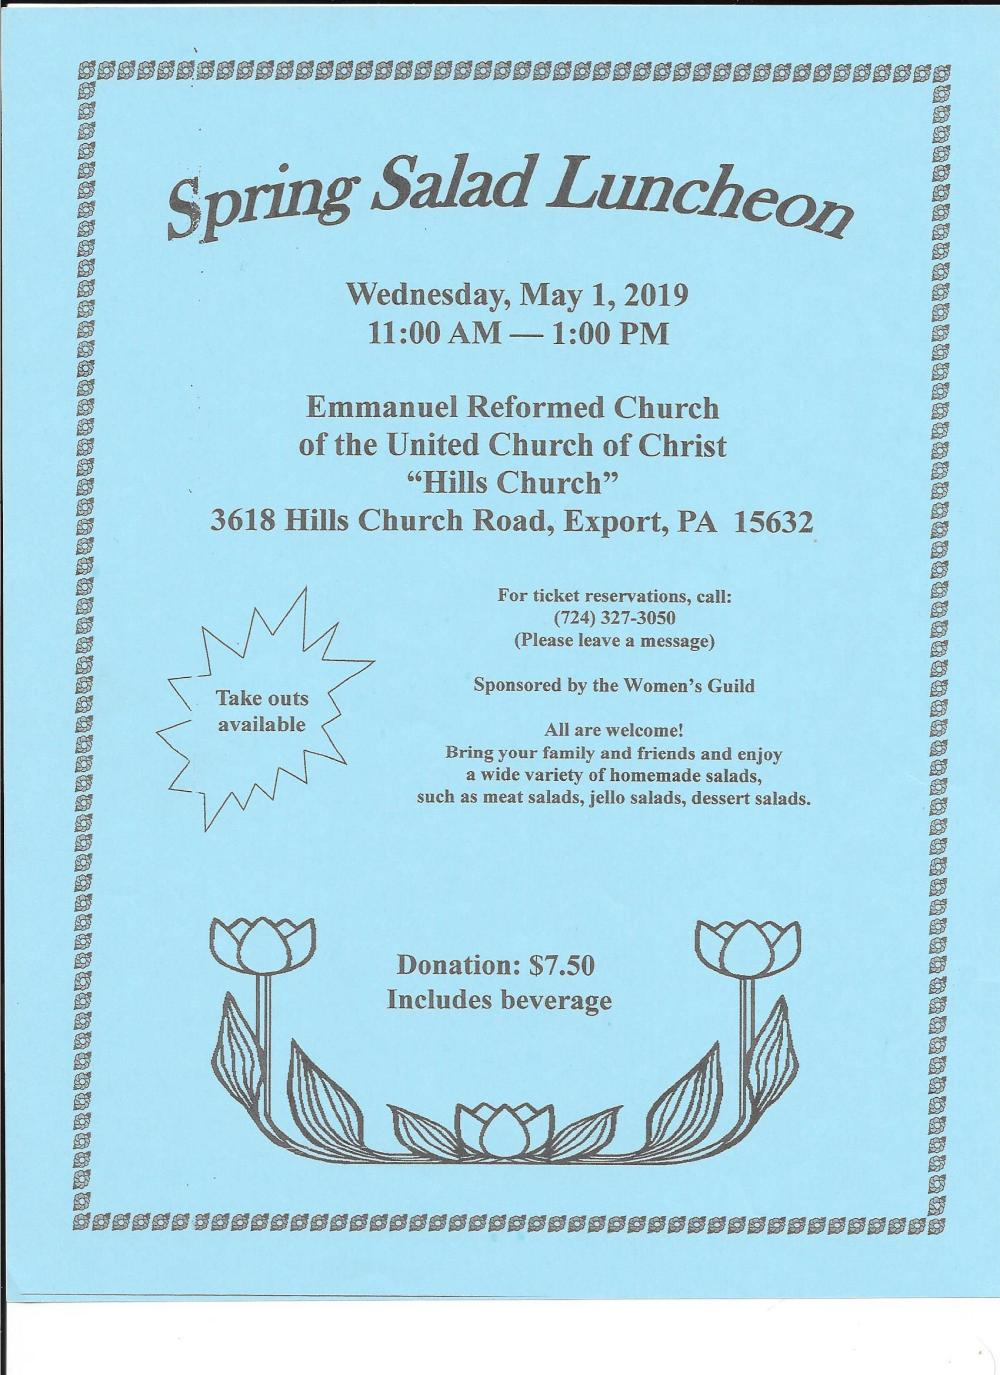 spring salad luncheon flier 2019